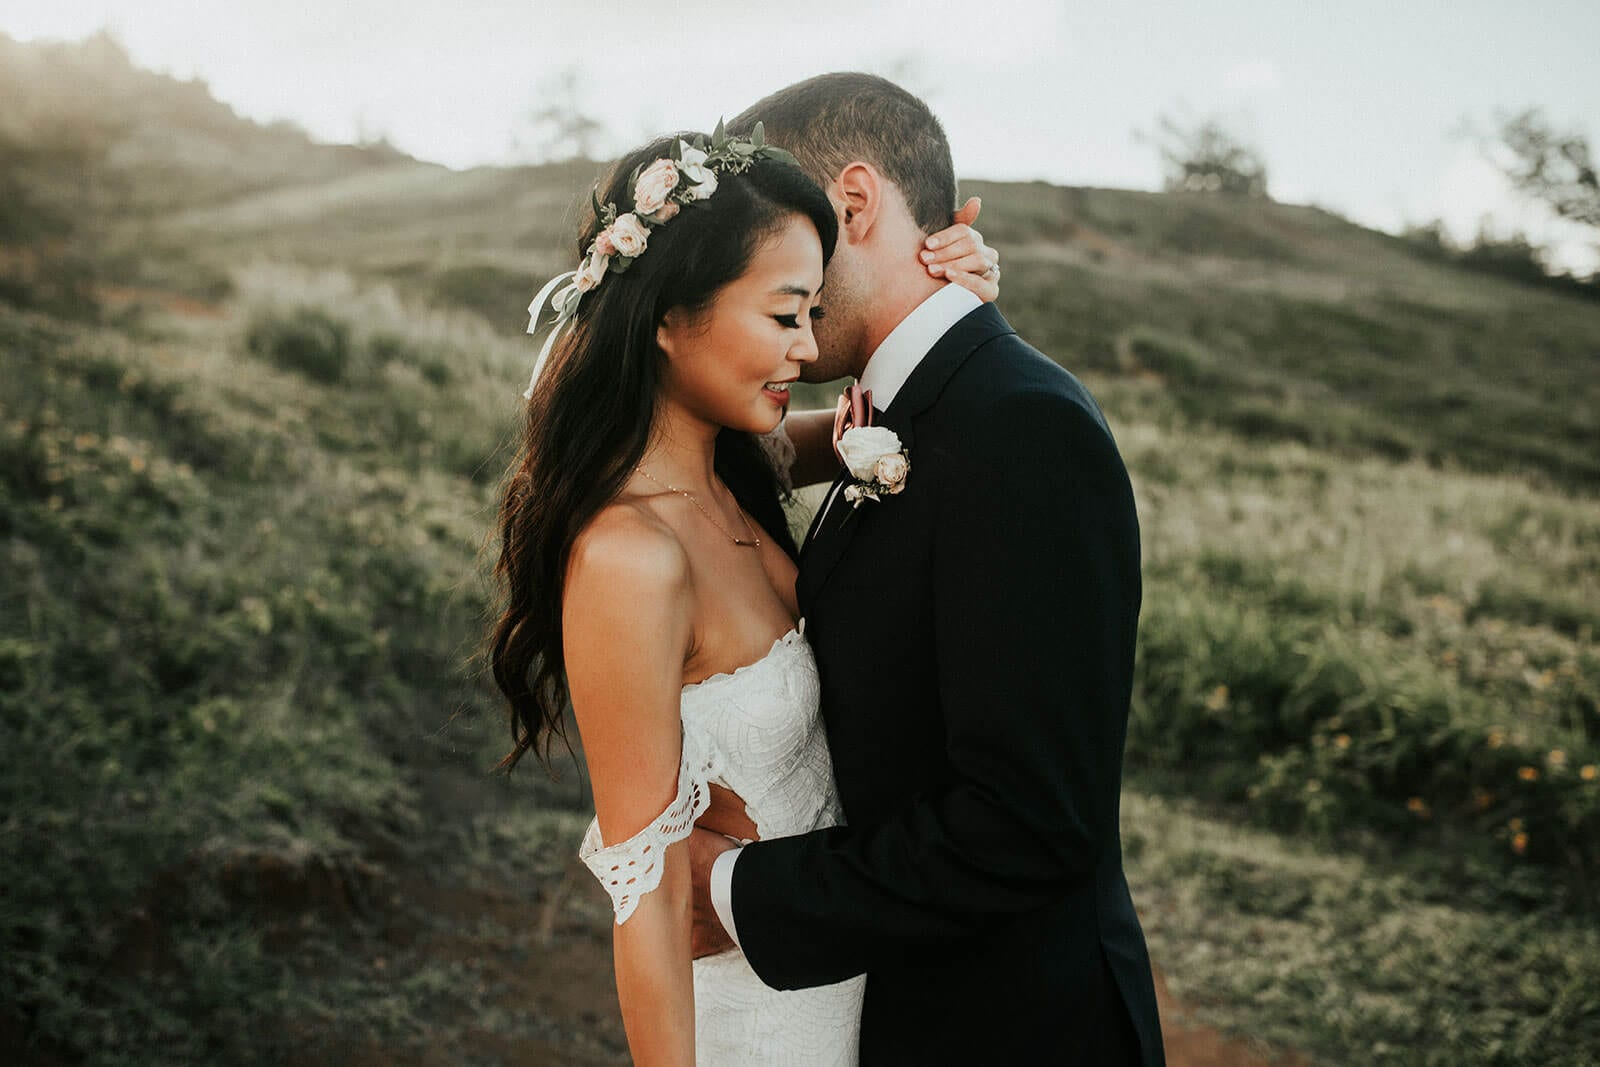 Brunette bride wearing Grace Loves Lace Paloma Gown embracing groom on grassy hill